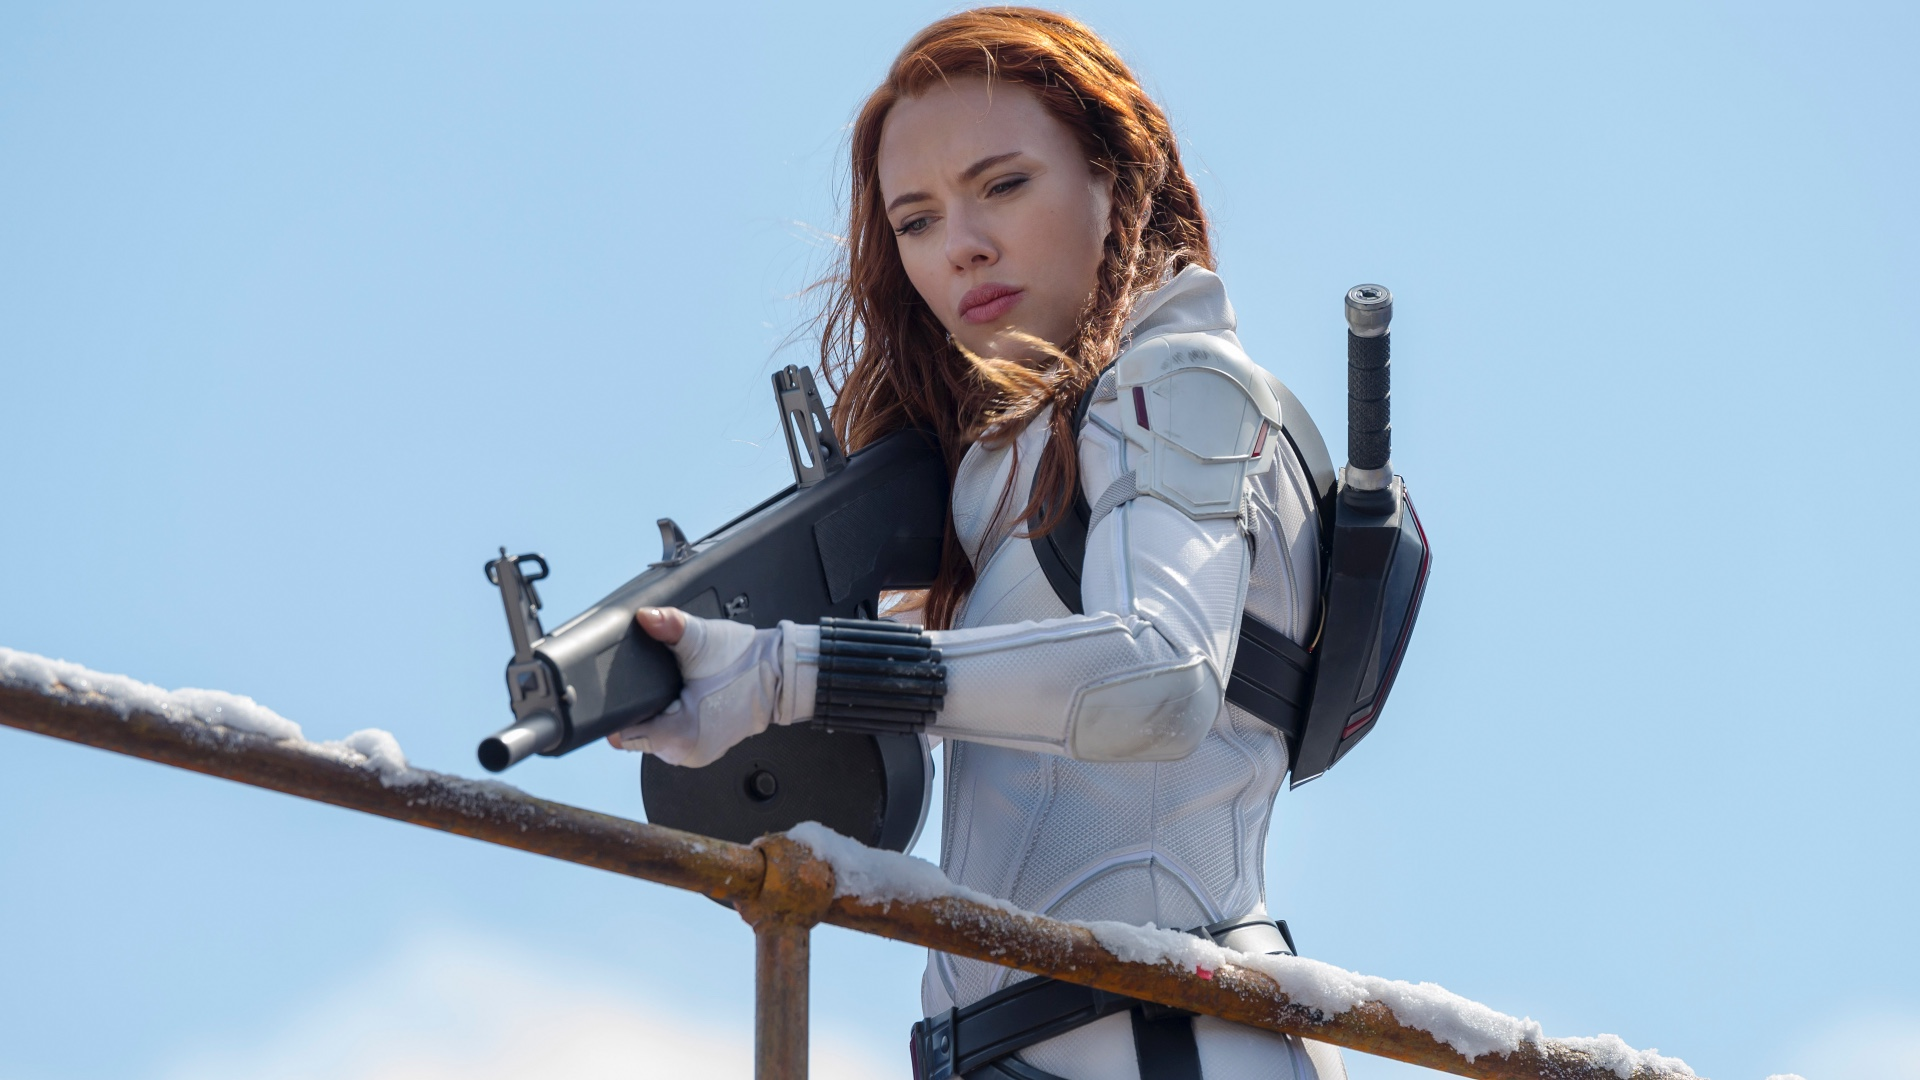 And just like that the blockbuster streaming era got a lot more complicated. Black Widow star and longtime Marvel Cinematic Universe actress Scarlett Johansson filed a lawsuit against Disney on Thursday in Los Angeles Superior Court. The claim alleges that h…